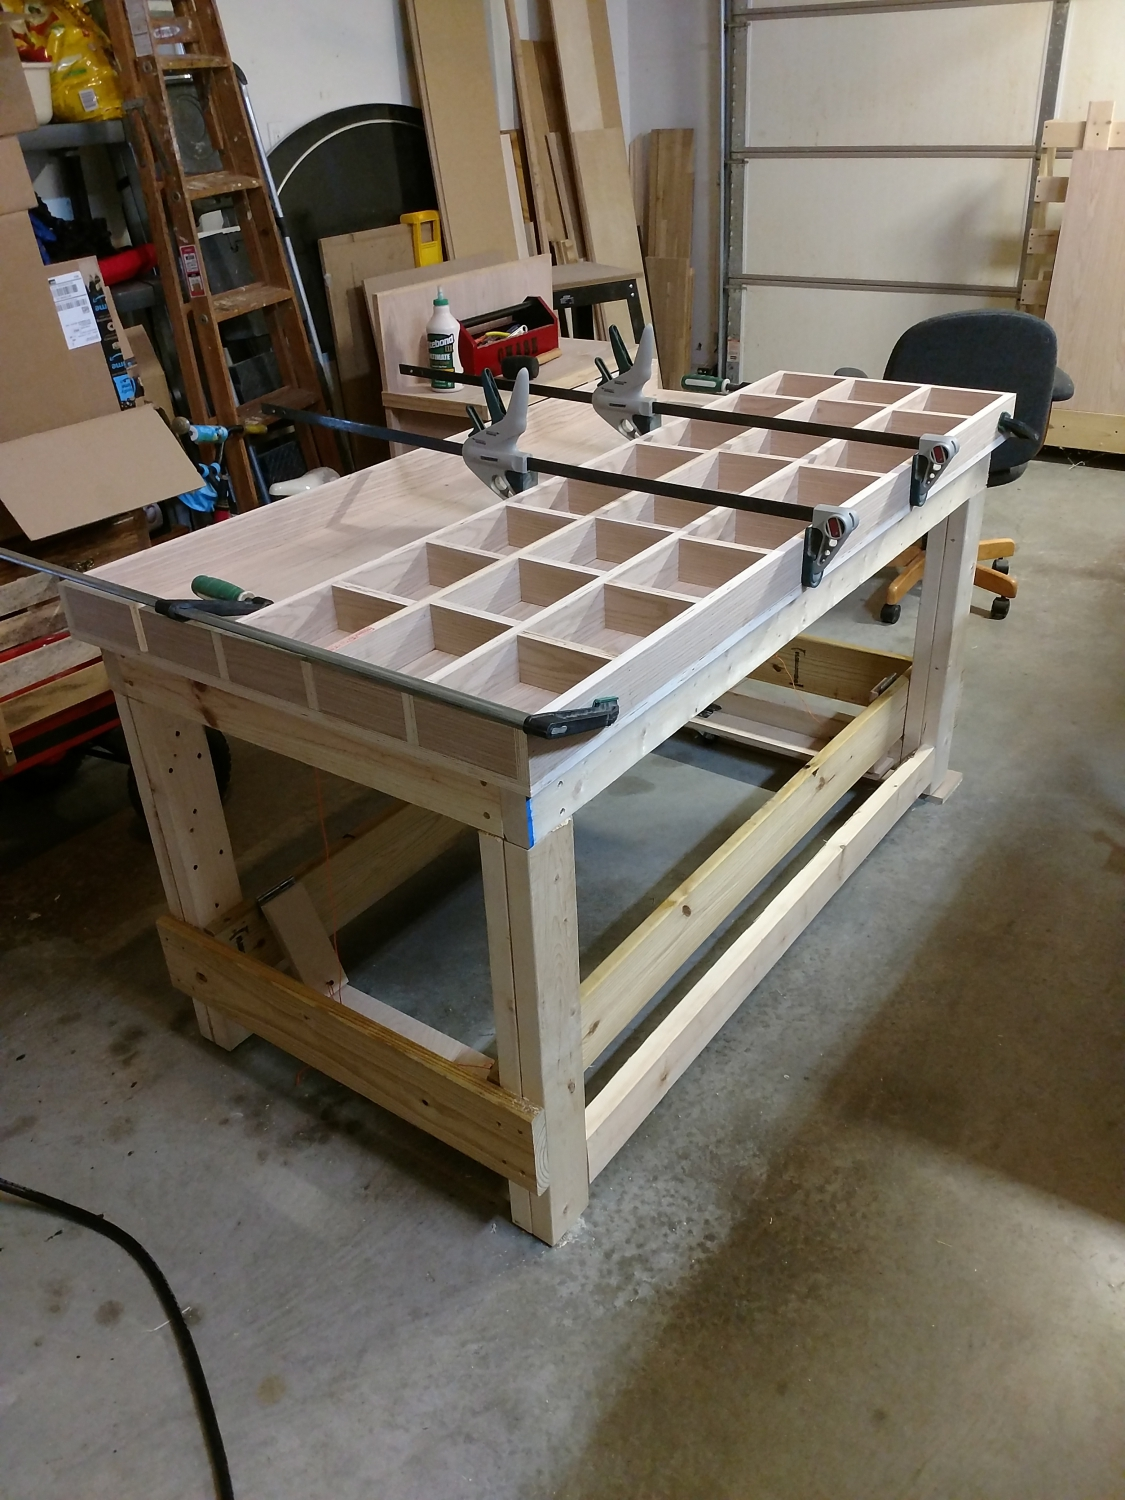 Torsion Box Workbench For My Woodshop What I Did With Pictures